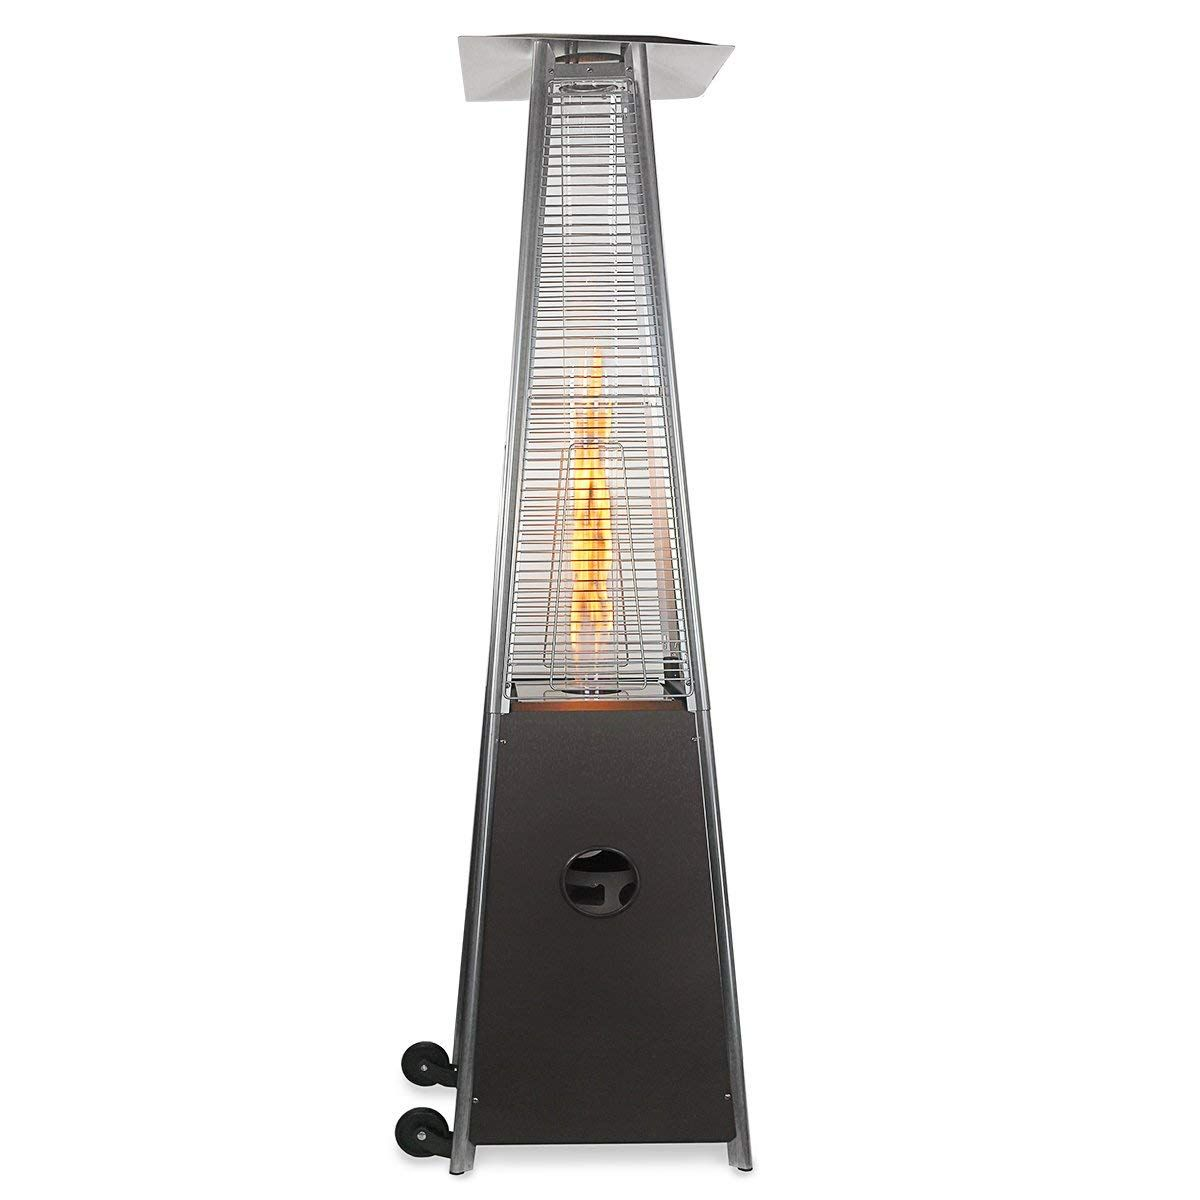 Barton patio heater quartz glass tube hammered bronze fireplaces